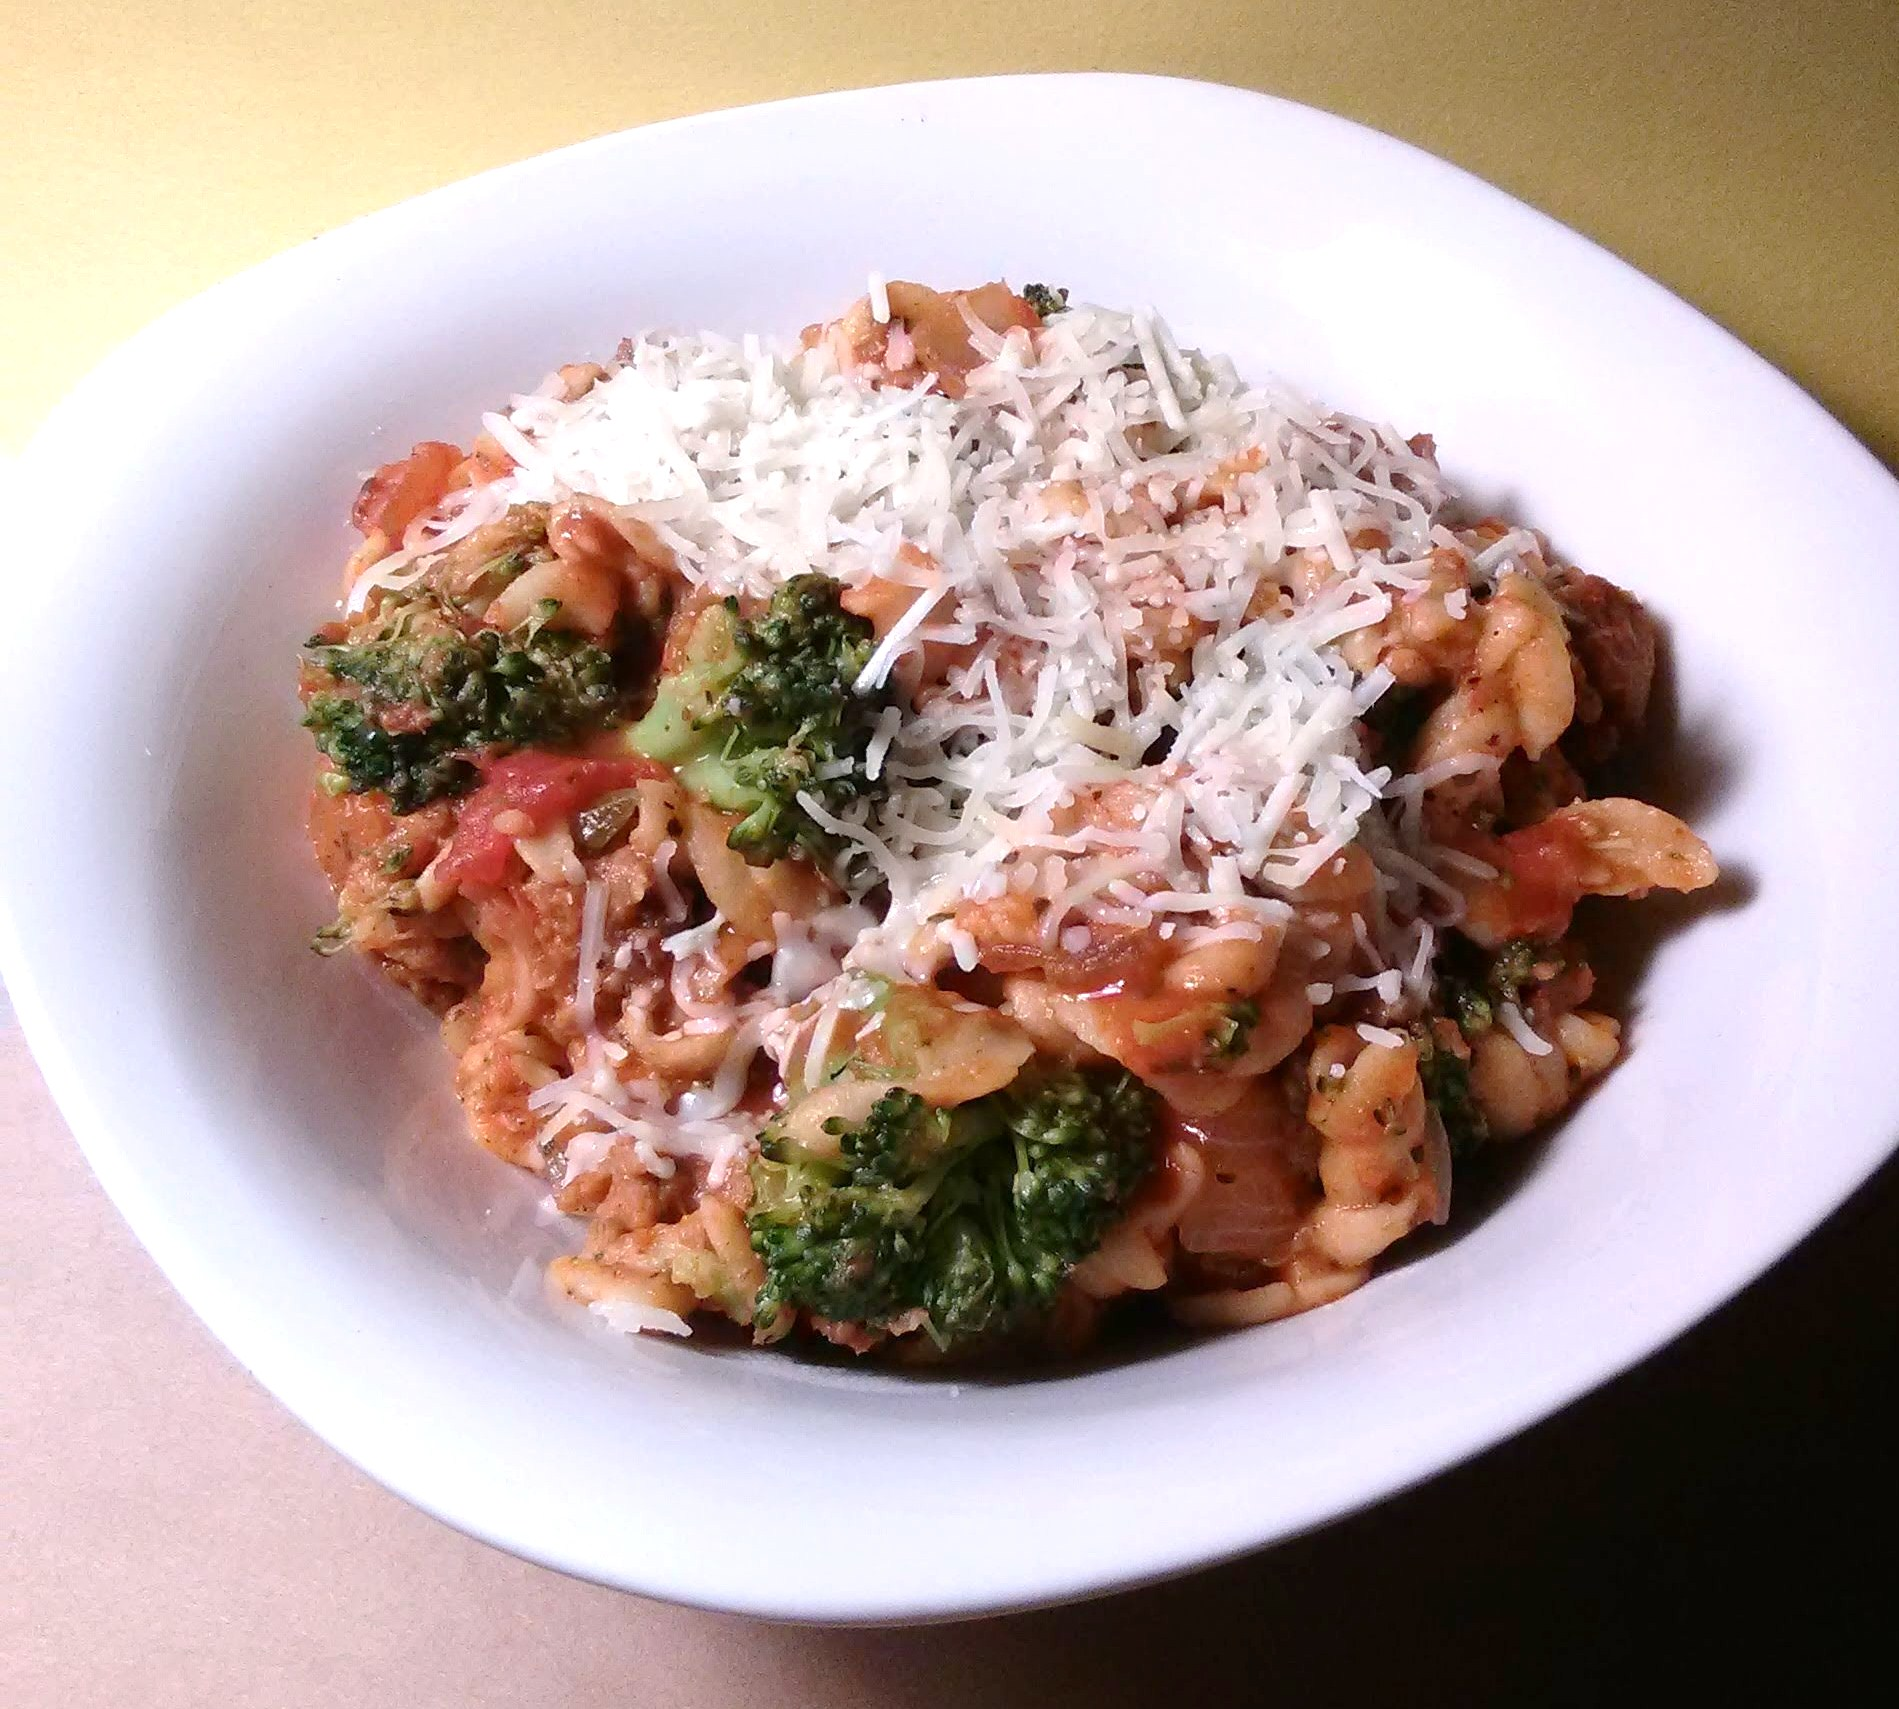 Weeknight Pasta with Broccoli and Ground Turkey